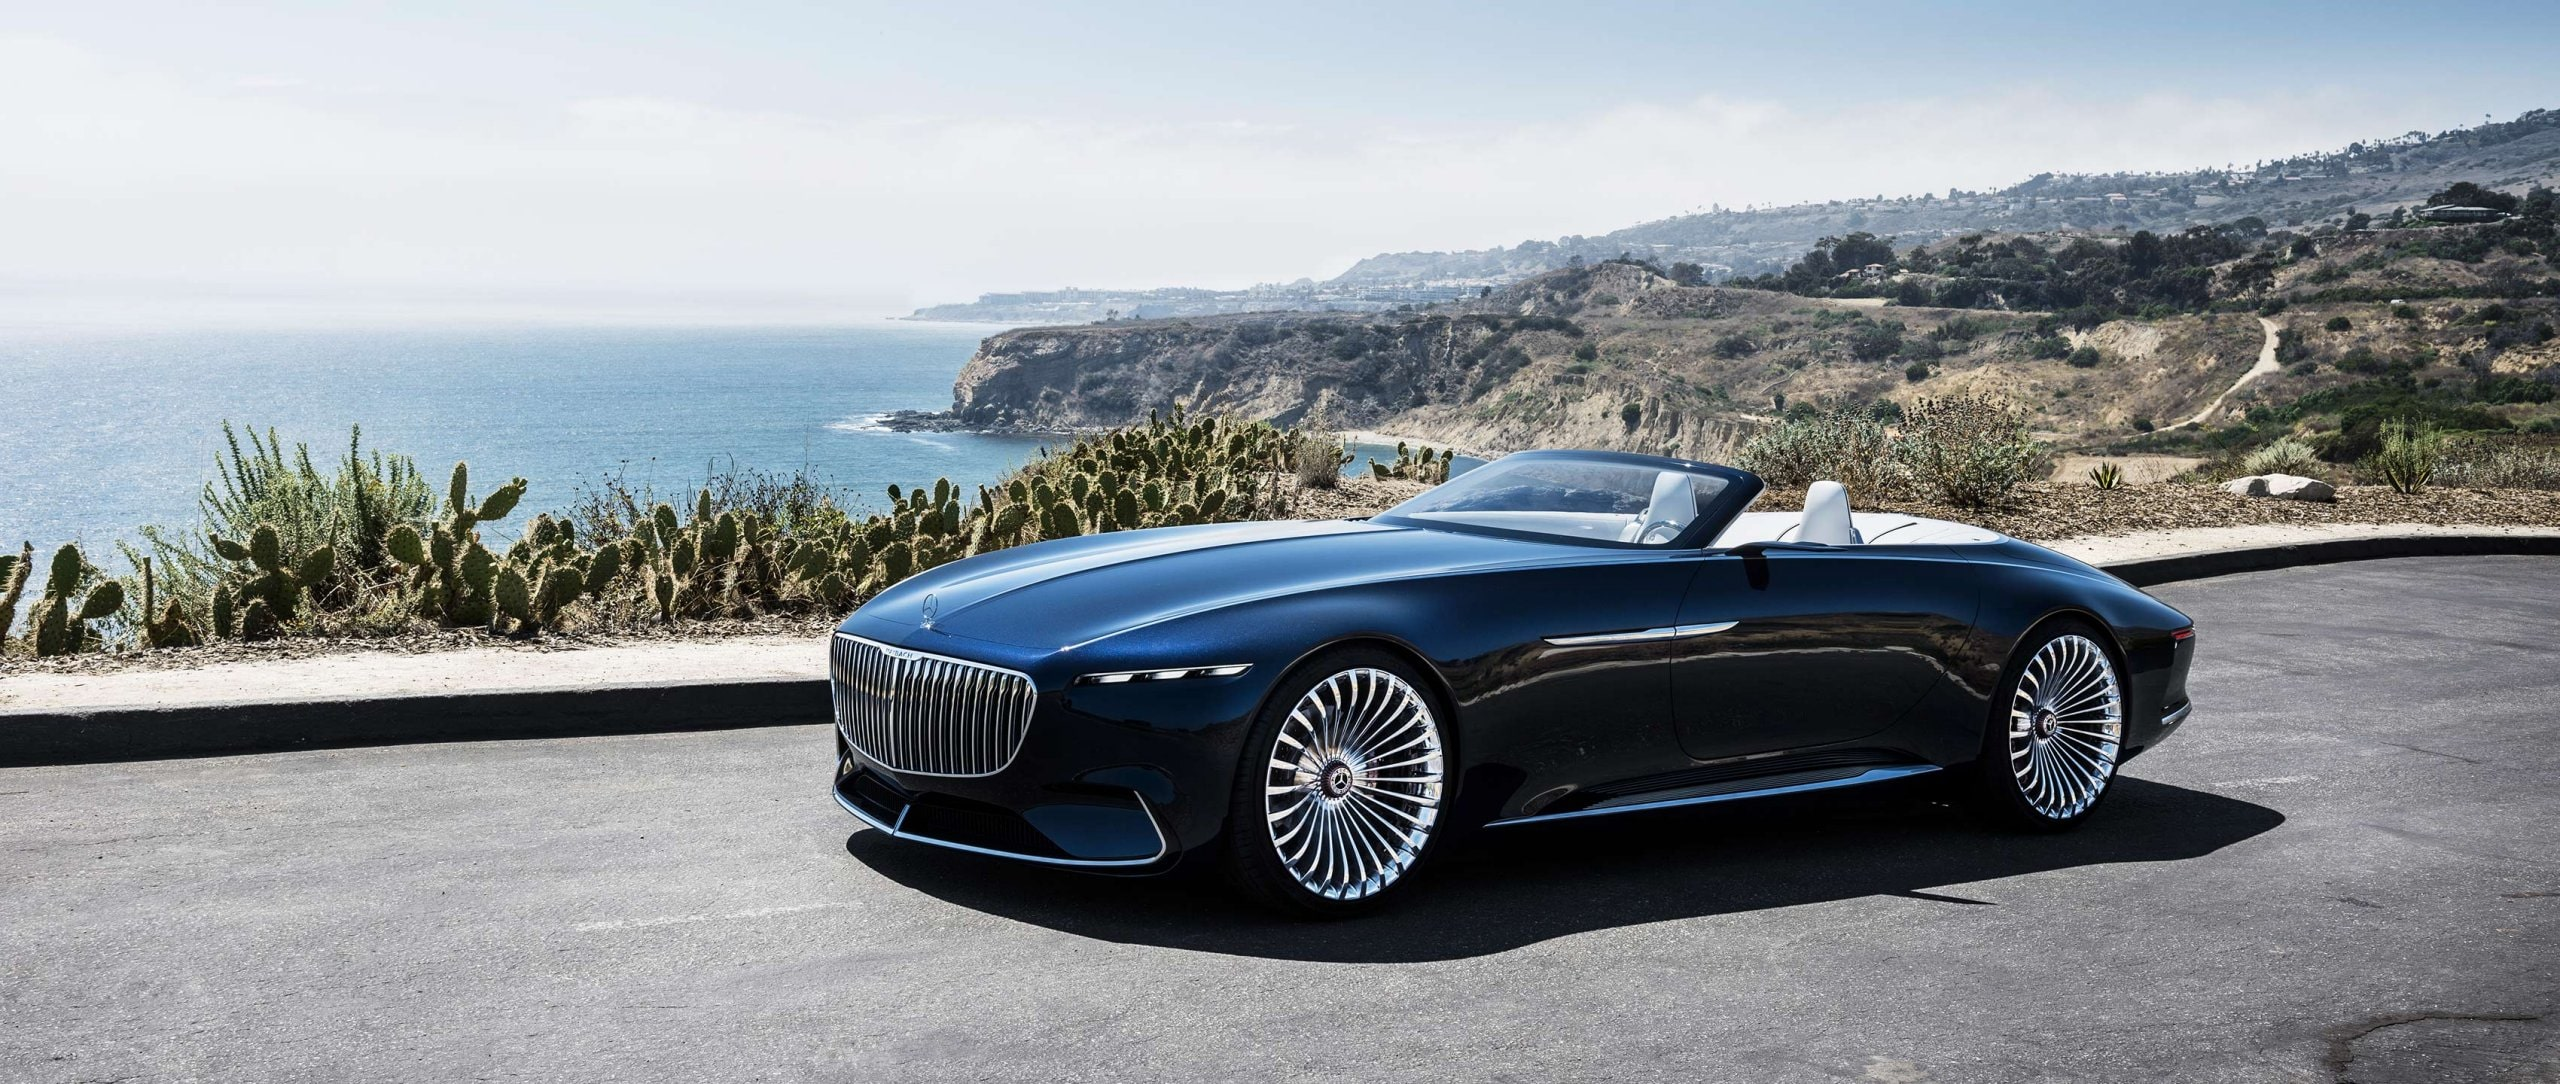 Luxuriöse Offenbarung: Vision Mercedes-Maybach 6 Cabriolet. Sinnlich-emotionales Design und innovative technische Konzeptlösungen für den ultimativen Luxus der Zukunft.